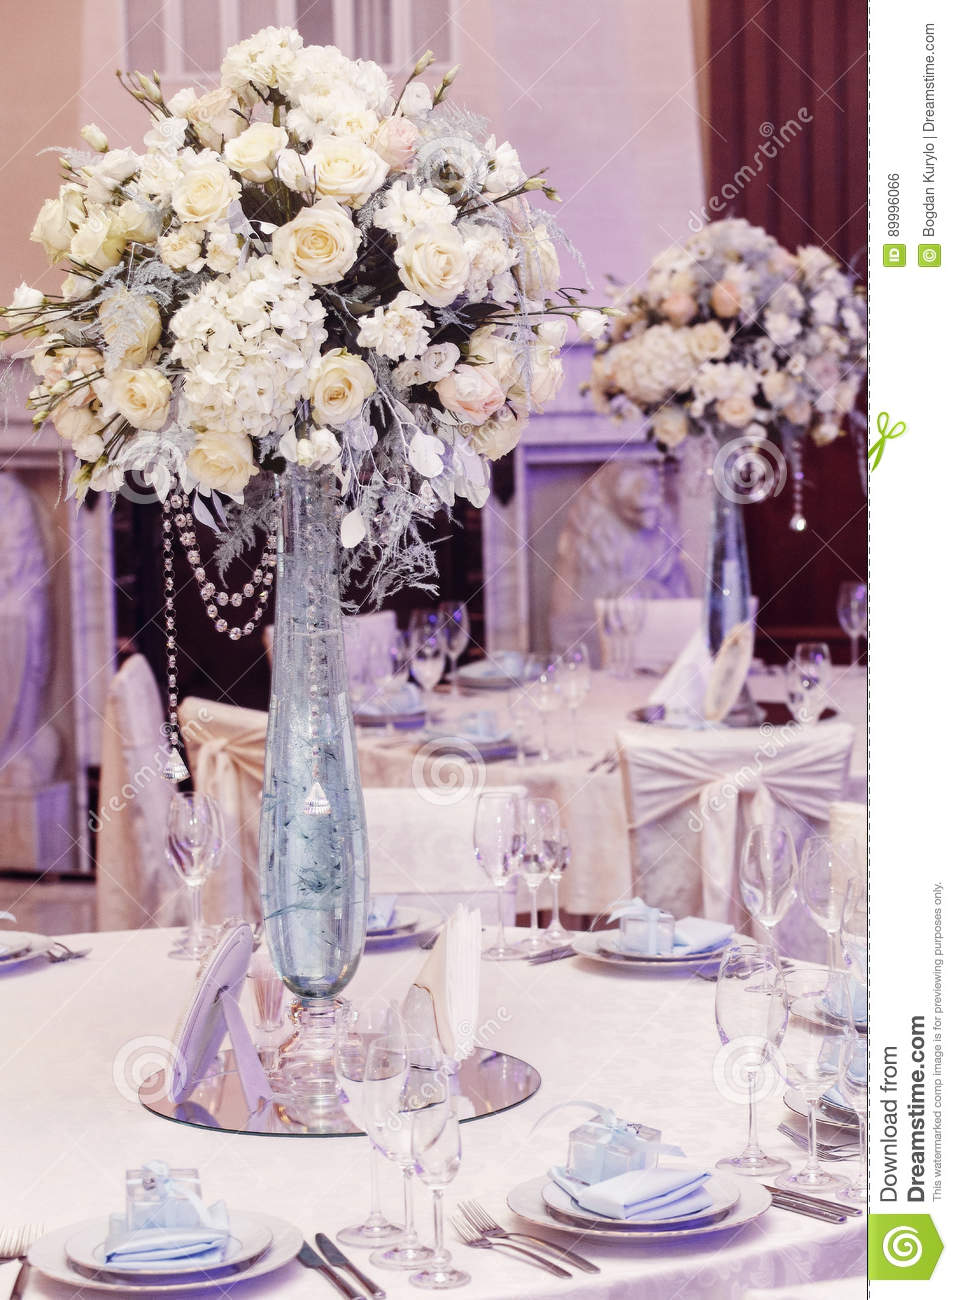 Luxury Wedding Decor With Flowers And Glass Vases With Jewels On